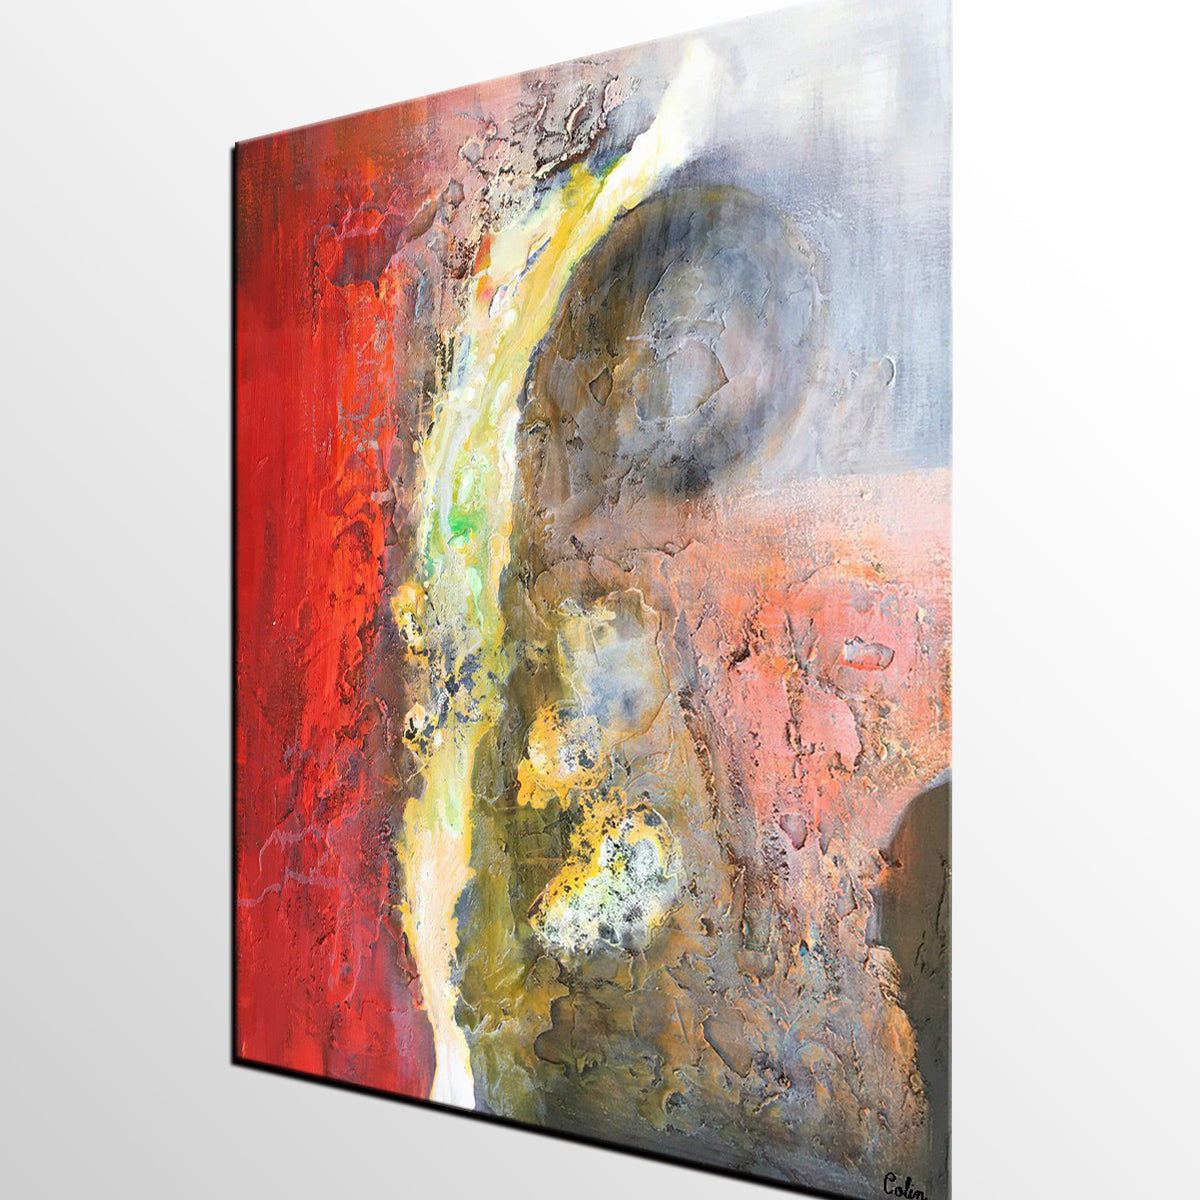 Wall Art Canvas Red : Canvas art red abstract modern wall